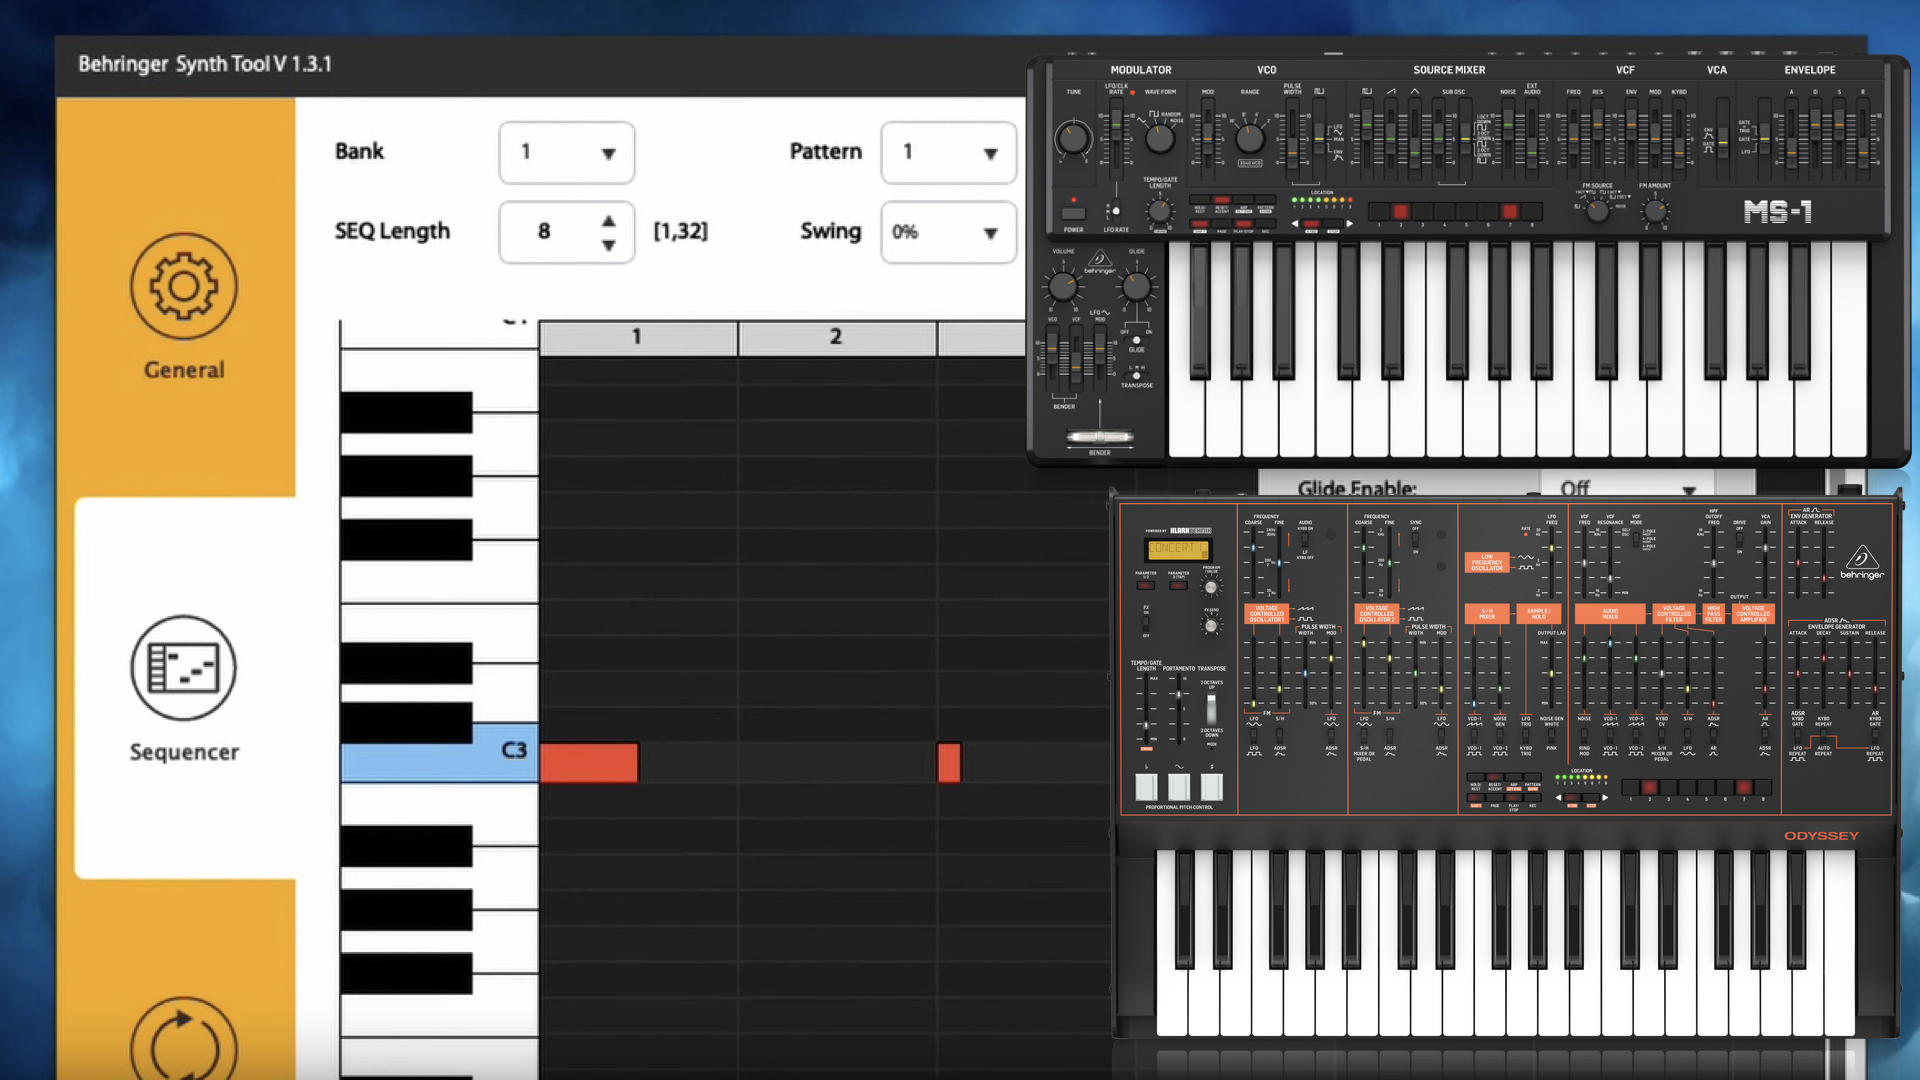 Behringer Synth Tool Features A Sequencer Editor For MS-1